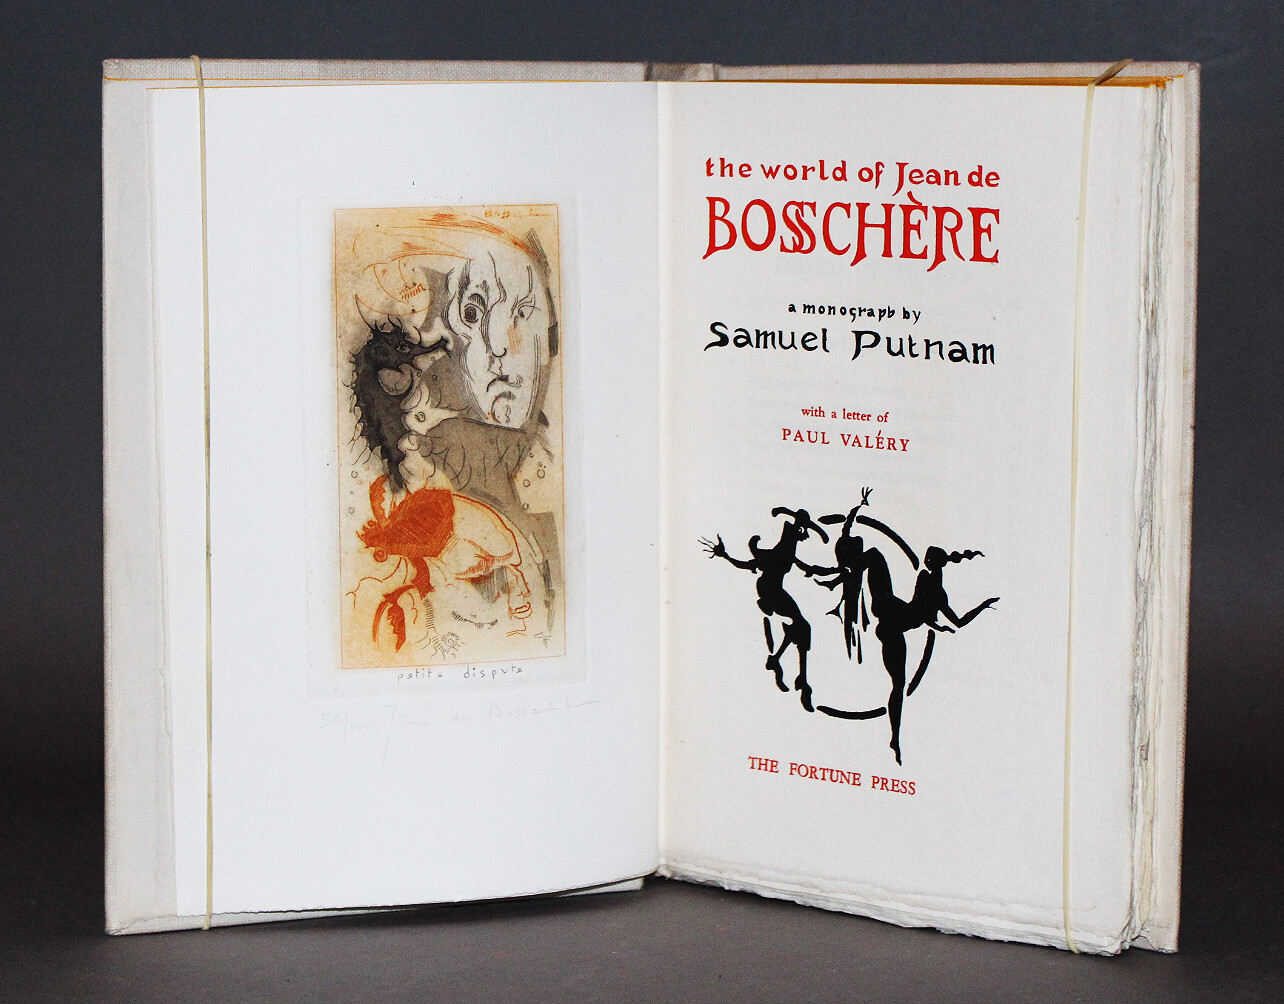 [DE BOSSCHÈRE] PUTNAM, Samuel. The World of Jean de Bosschère, 1932.